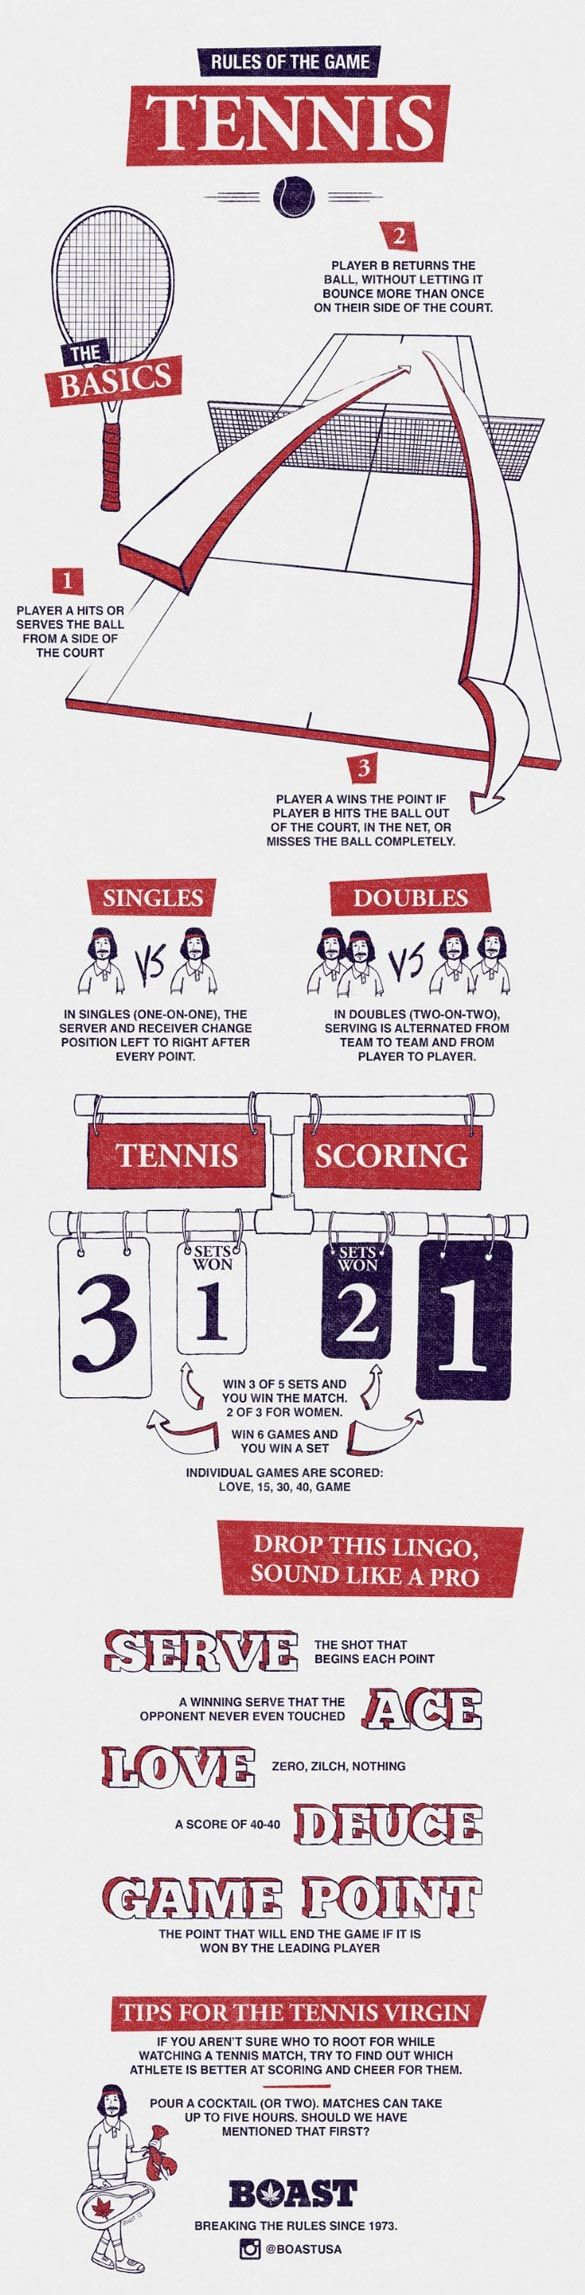 Tennis Rules How To Keep Score And Play  Tennis Tennis Rules